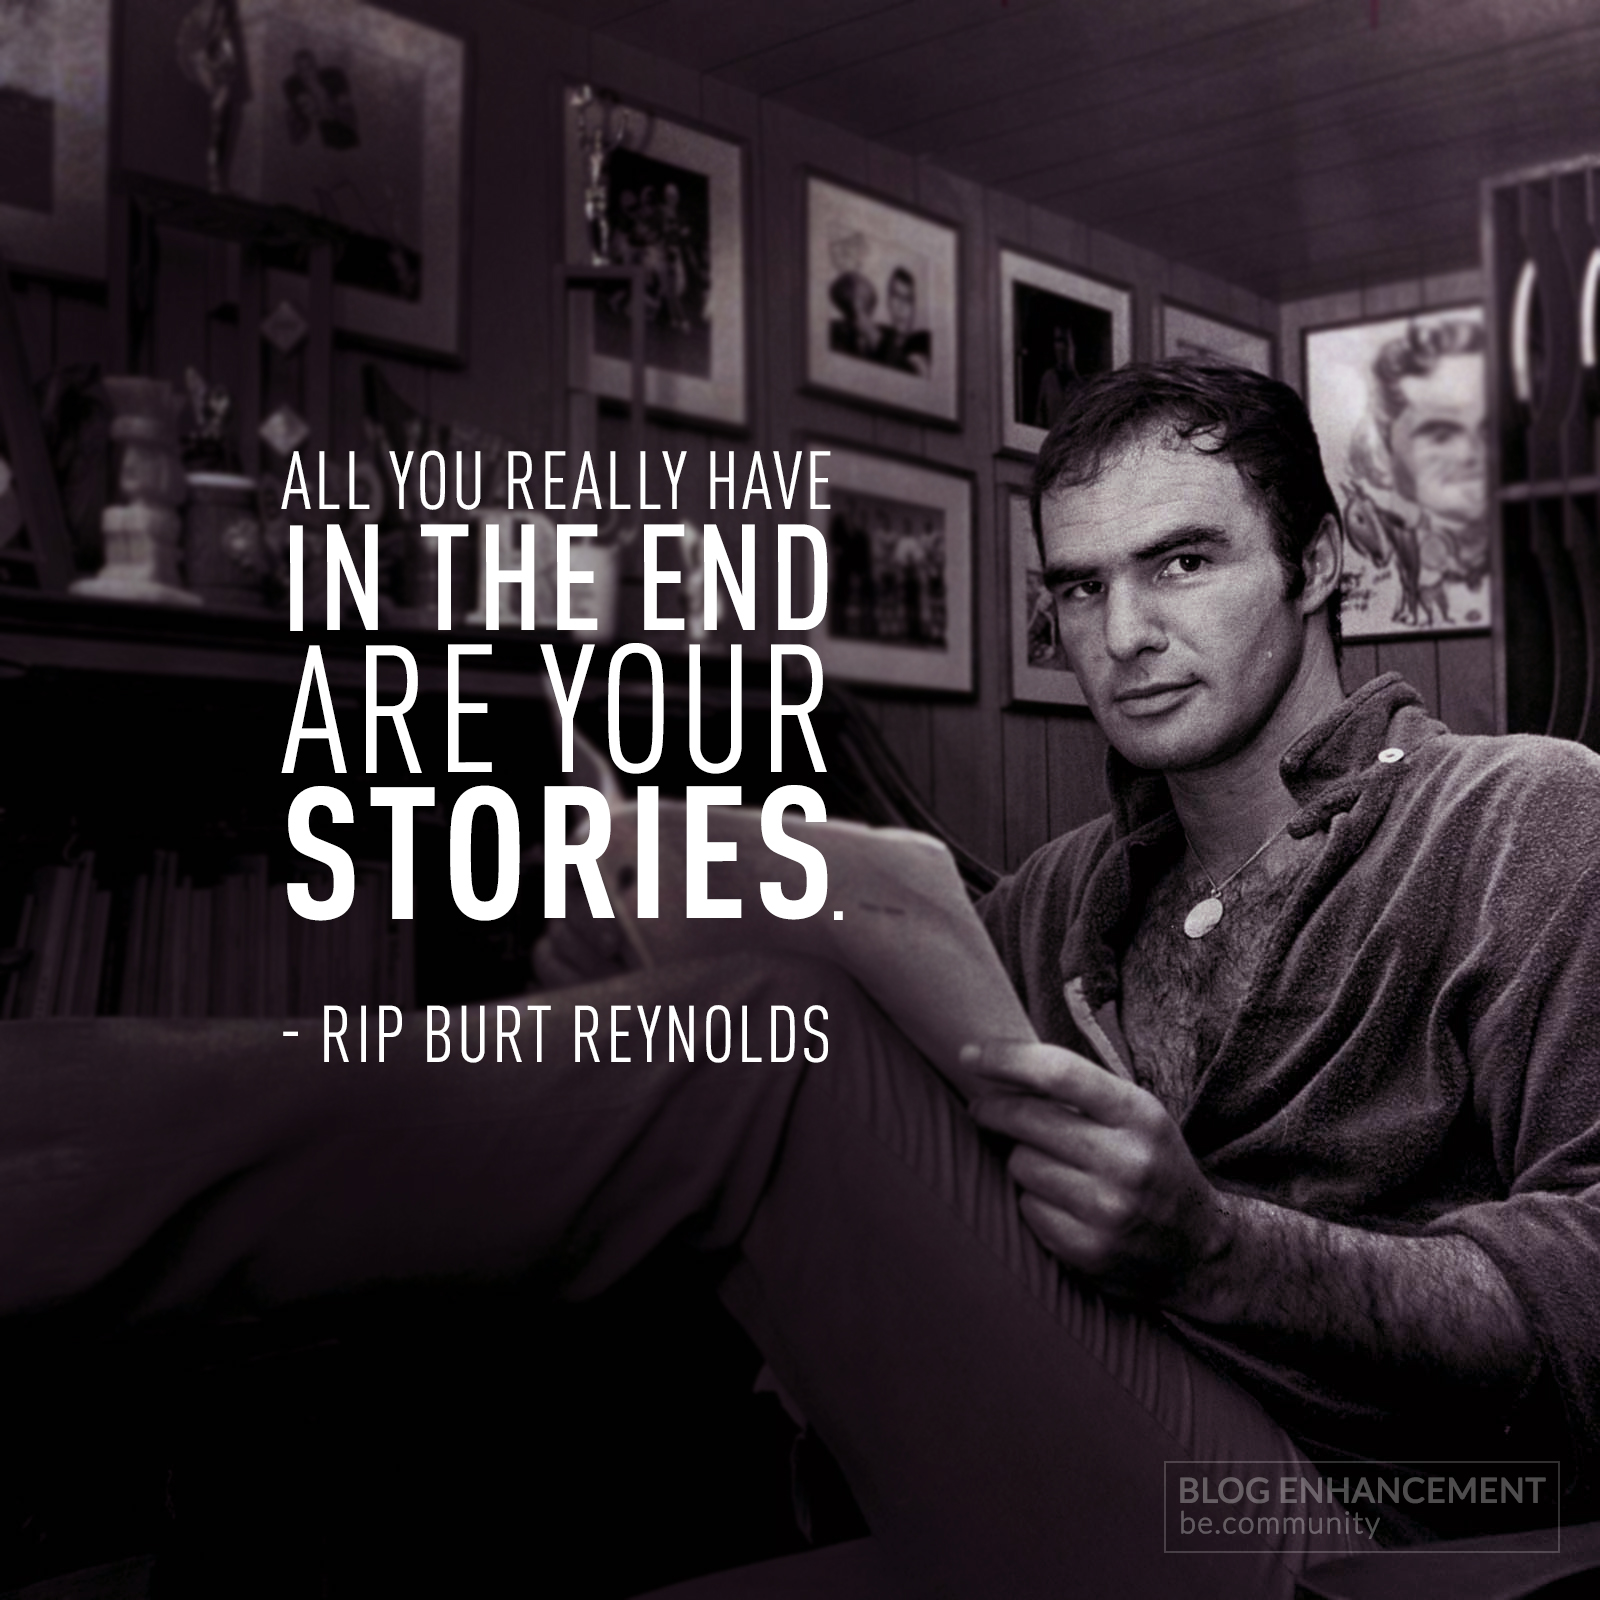 [Image] Burt Reynolds Nails it with this famous quote. So get off your ass and make sure That when your time comes, your stories are even just 10% as interesting as his! R.I.P.